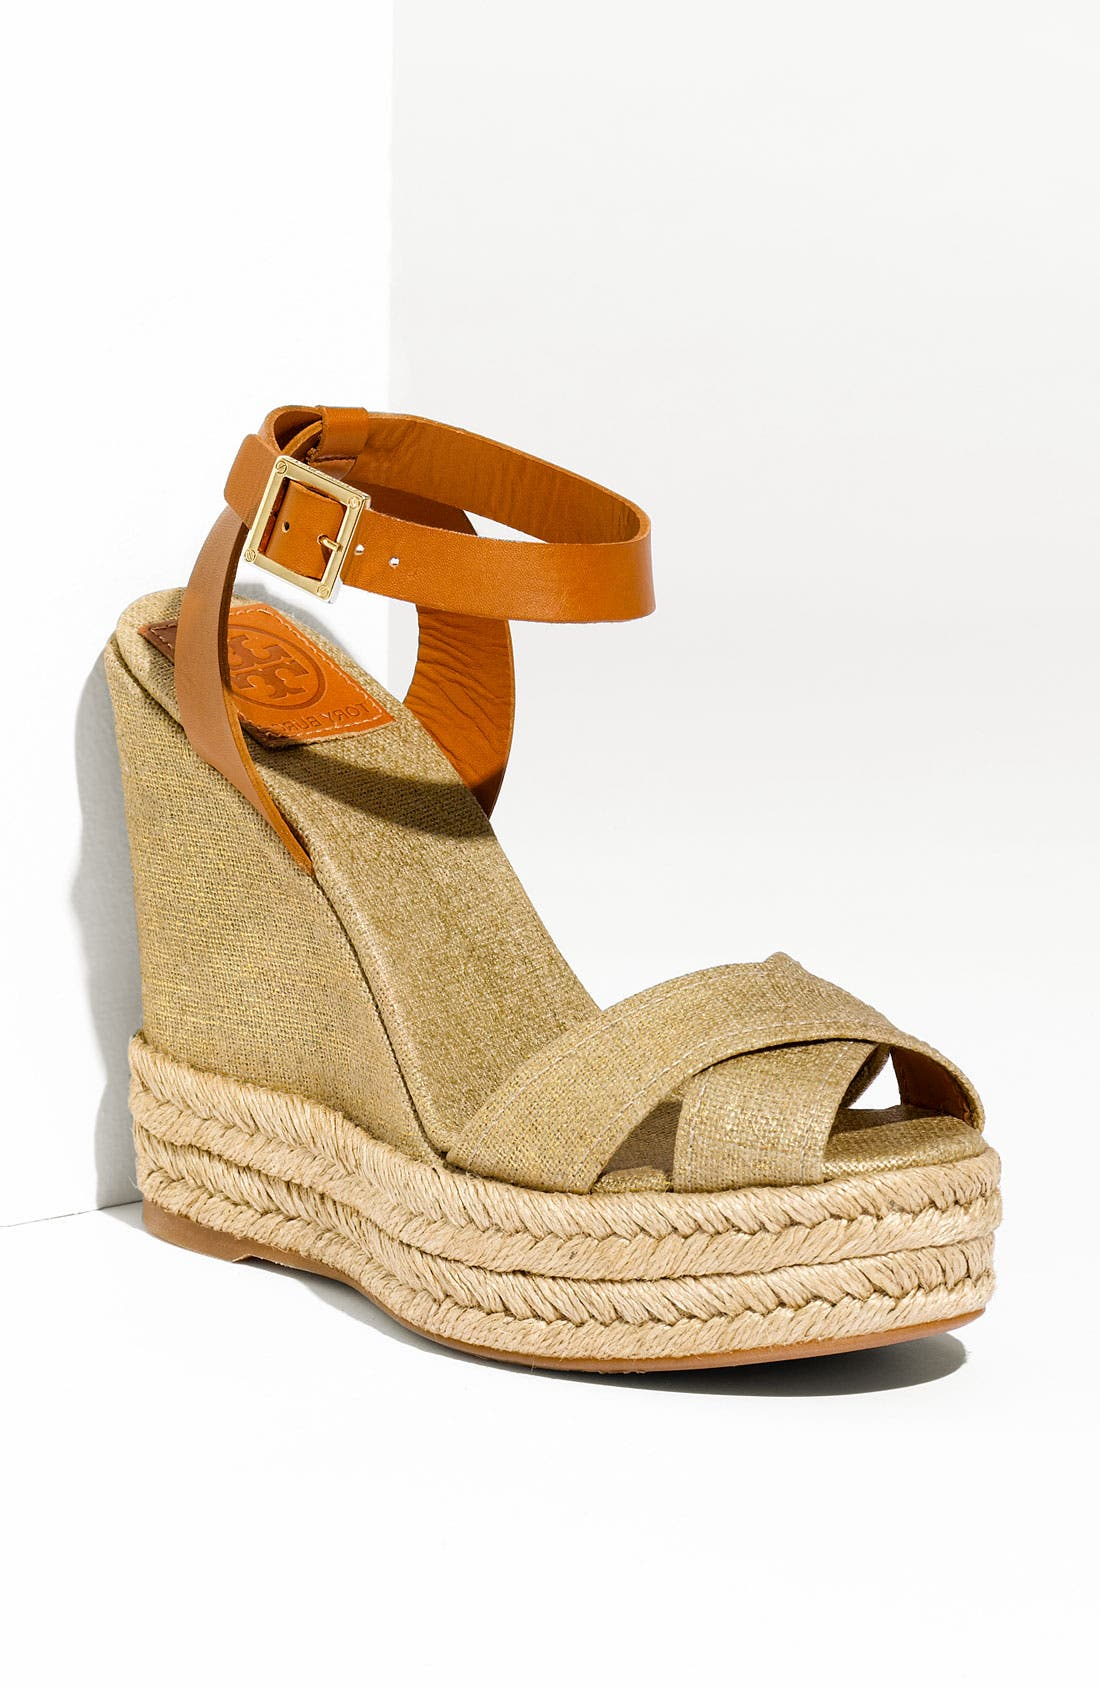 Alternate Image 1 Selected - Tory Burch Criss Cross Sandal